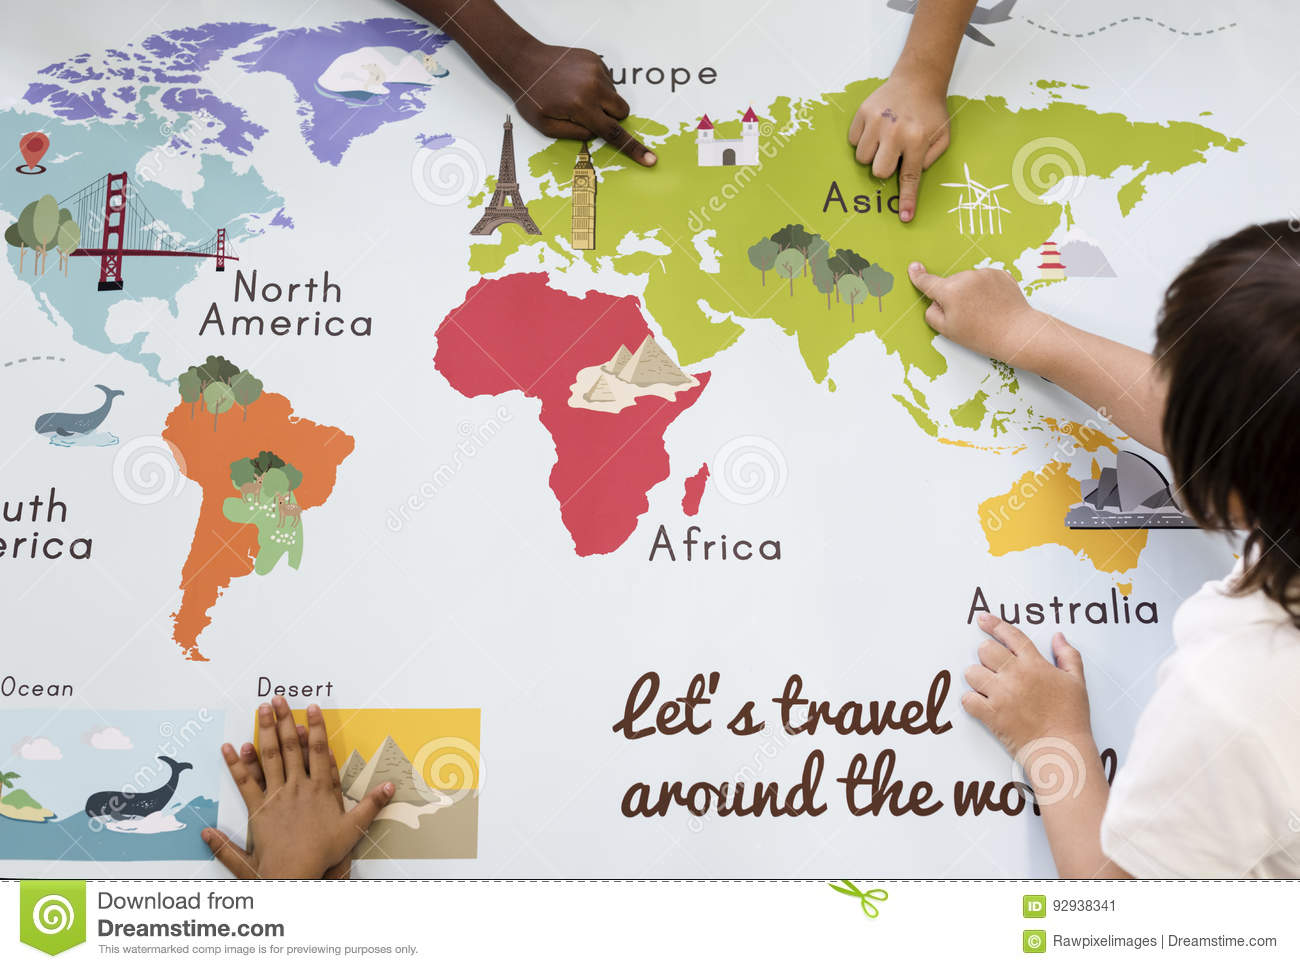 Kids Learning World Map With Continents Countries Ocean ... on world map continents and oceans, africa map, world death map, cool world map, atlas map, world desert map, geography facts, world climate map, satellite world map, free world maps, detailed world map, world history map, world new zealand map, world atlas online, world weather map, world physical map, world elevation map, country maps, world war ii map, 2nd grade world map, world continent map, world map outline, world map with cities, atlas maps, topographic world map, world atlas map, earth map, world communication map, latin america map, world political map, blank world map, geography lessons, world map printable, world photography map,